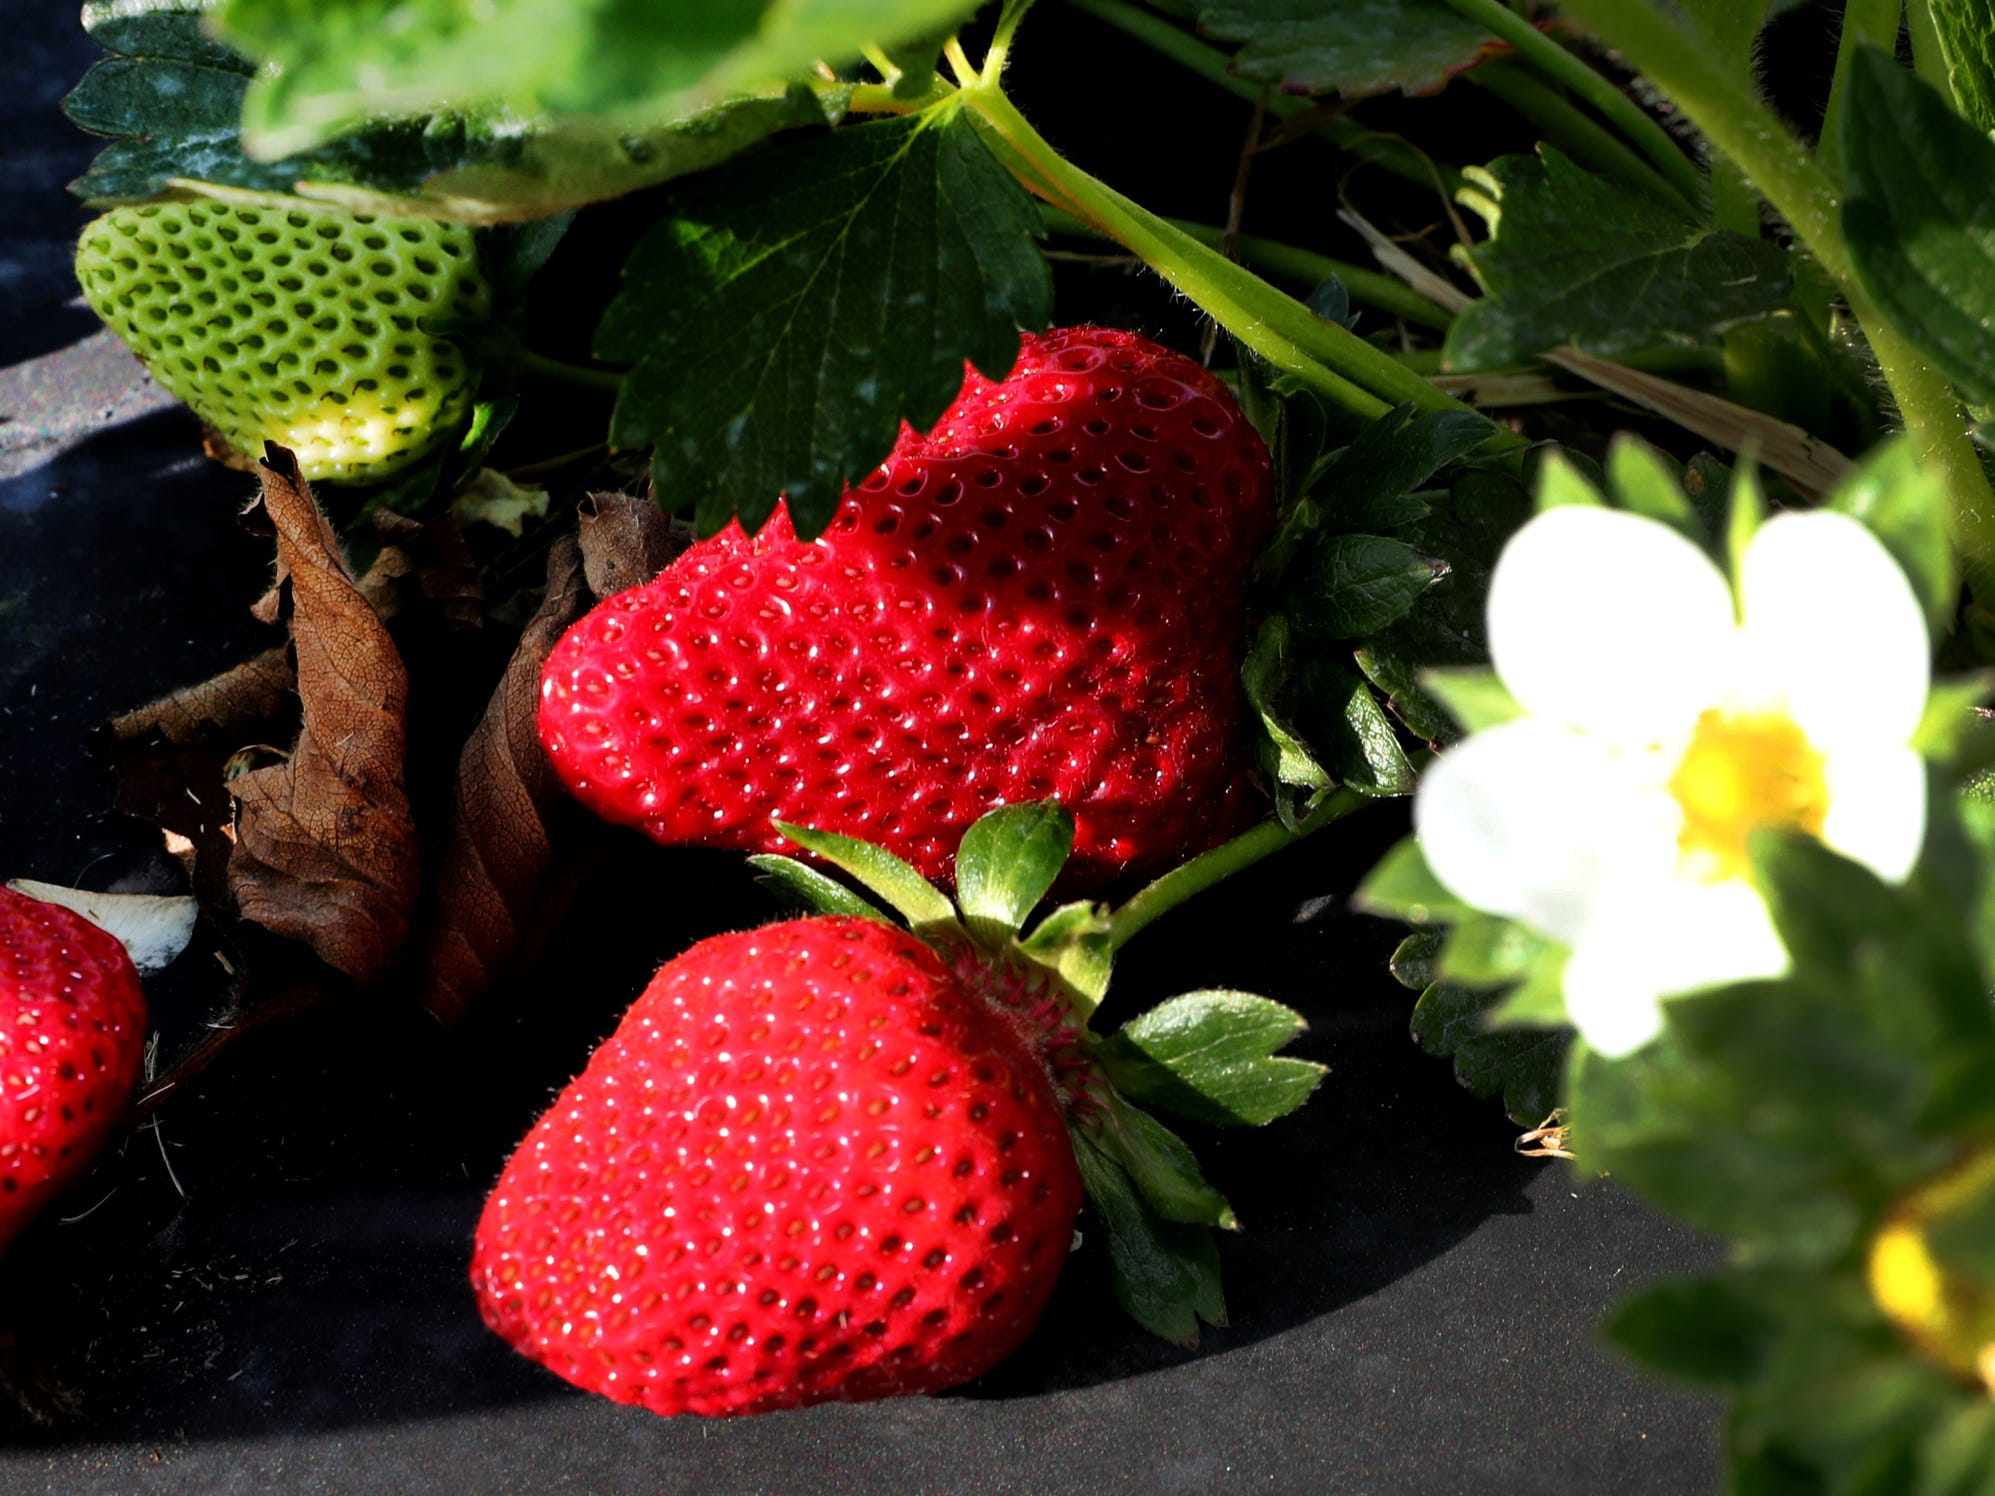 Batey Farms has large fresh strawberries ready to be picked on Wednesday April 24, 2019, at the 5331 Baker Road location in the Blackman area.